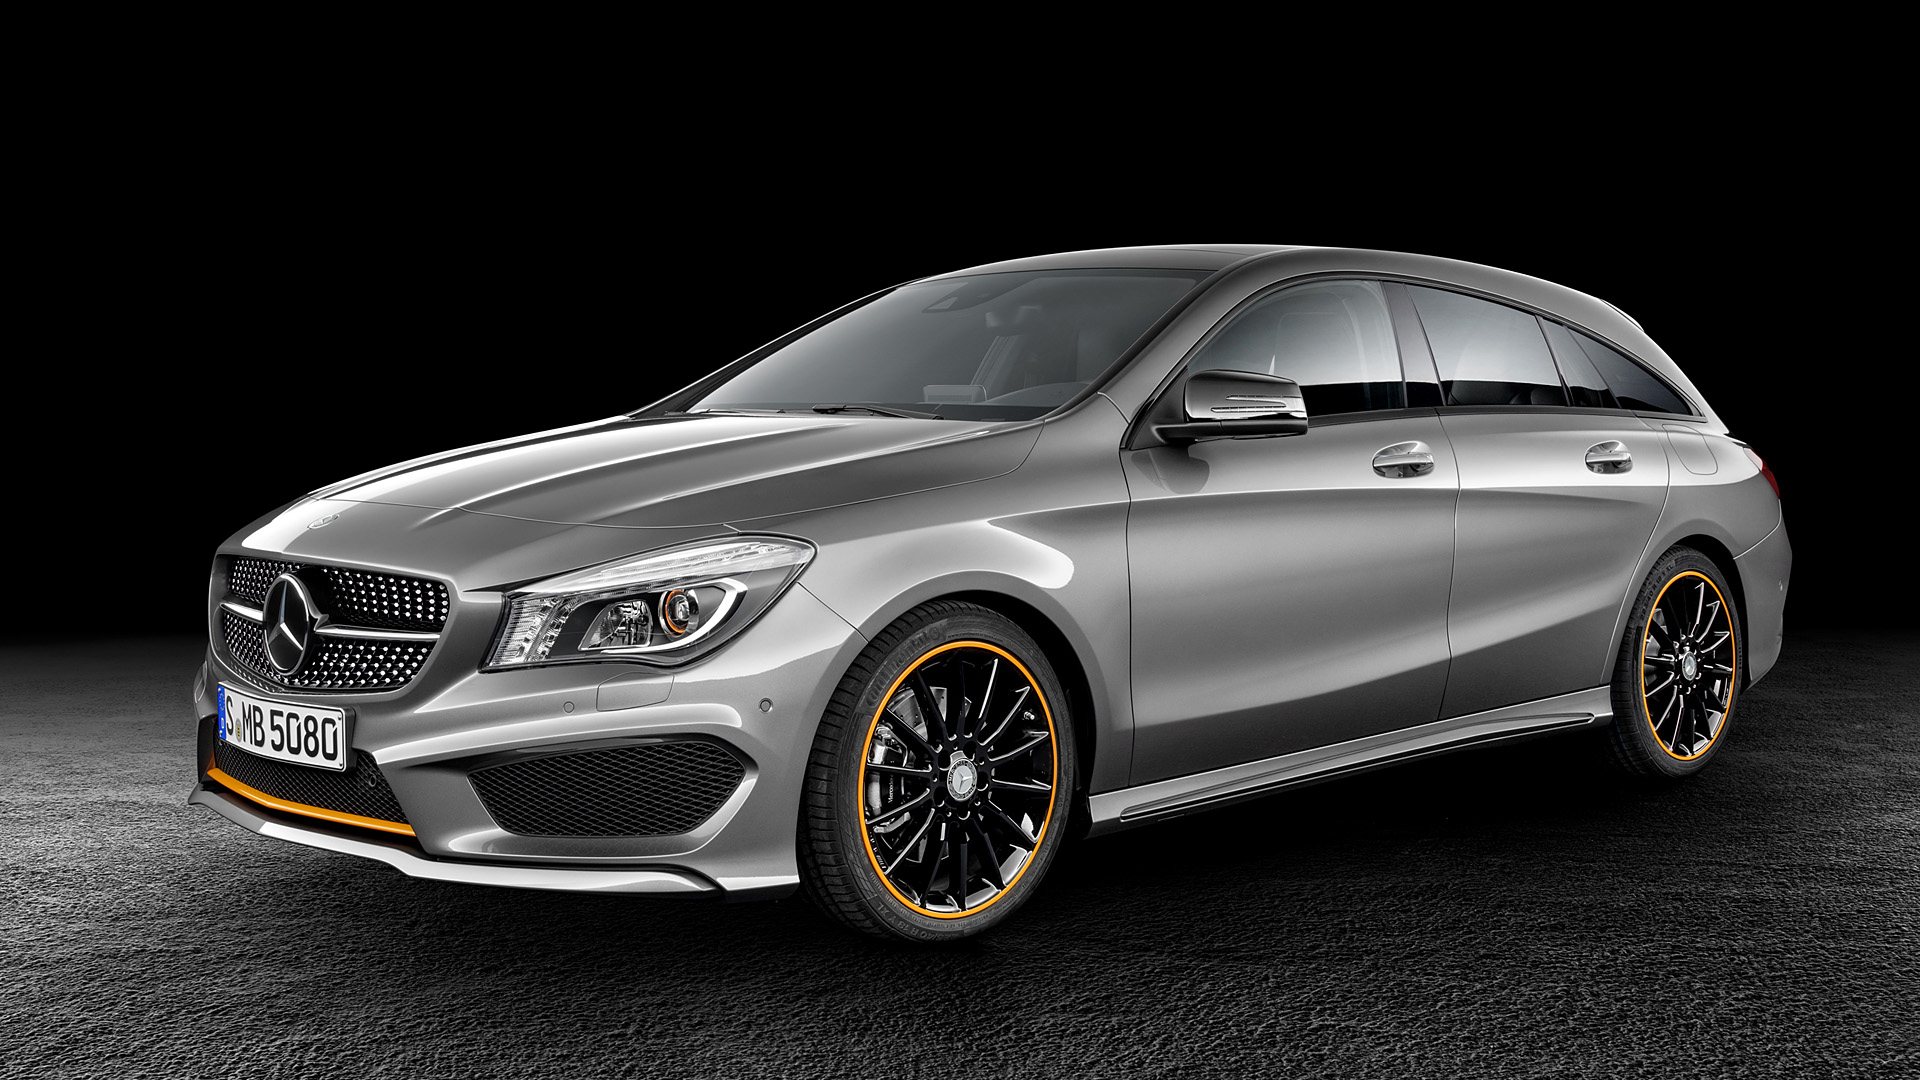 2016 Mercedes Benz CLA Shooting Brake Wallpapers Specs Videos 1920x1080